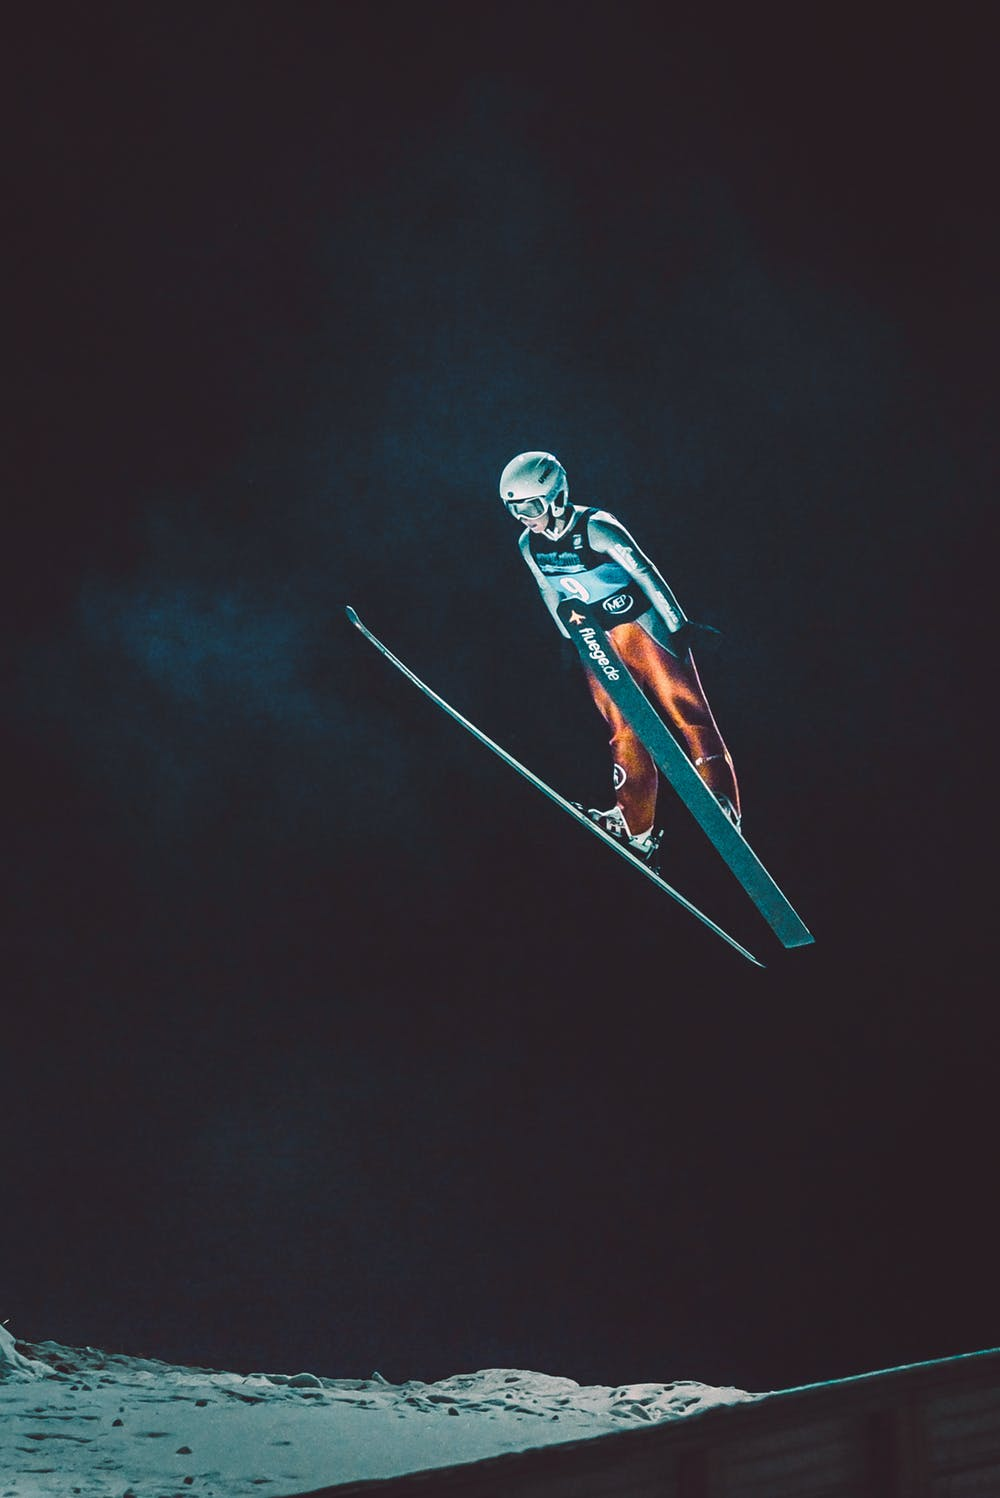 Famous Ski Freestyle Athletes In The World